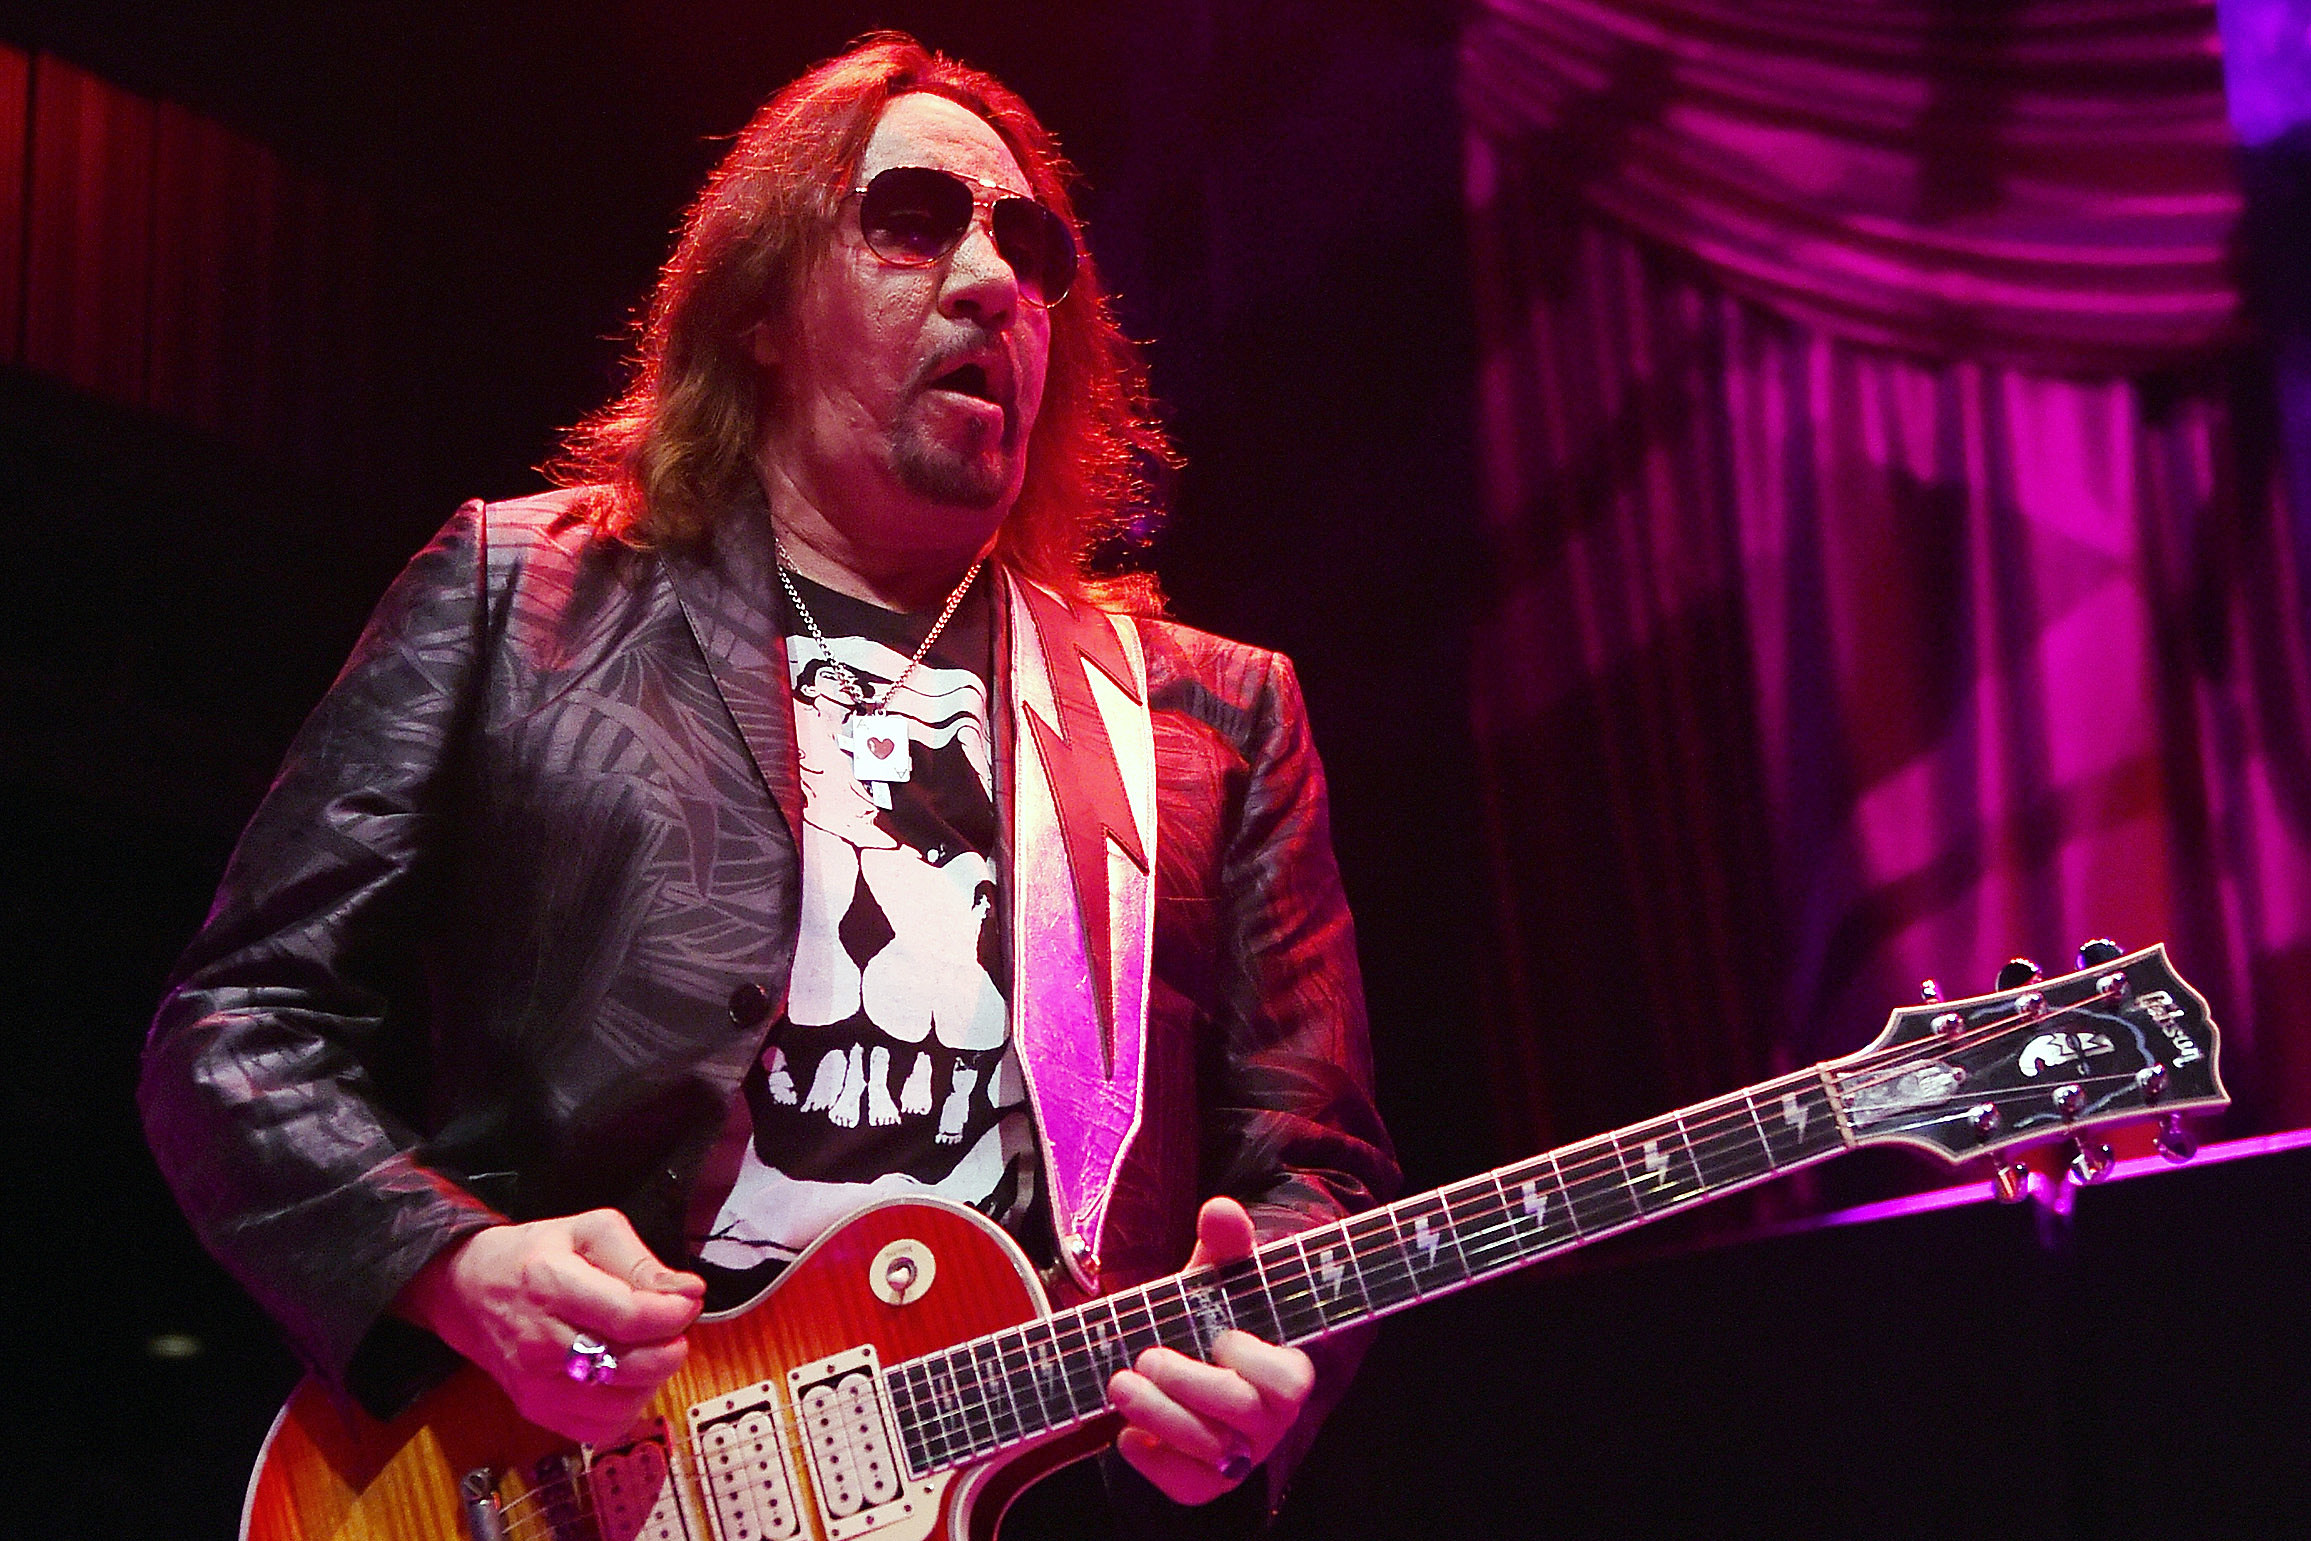 Ace Frehley Says Non-Sobriety Figured in the Firing of HIs Band